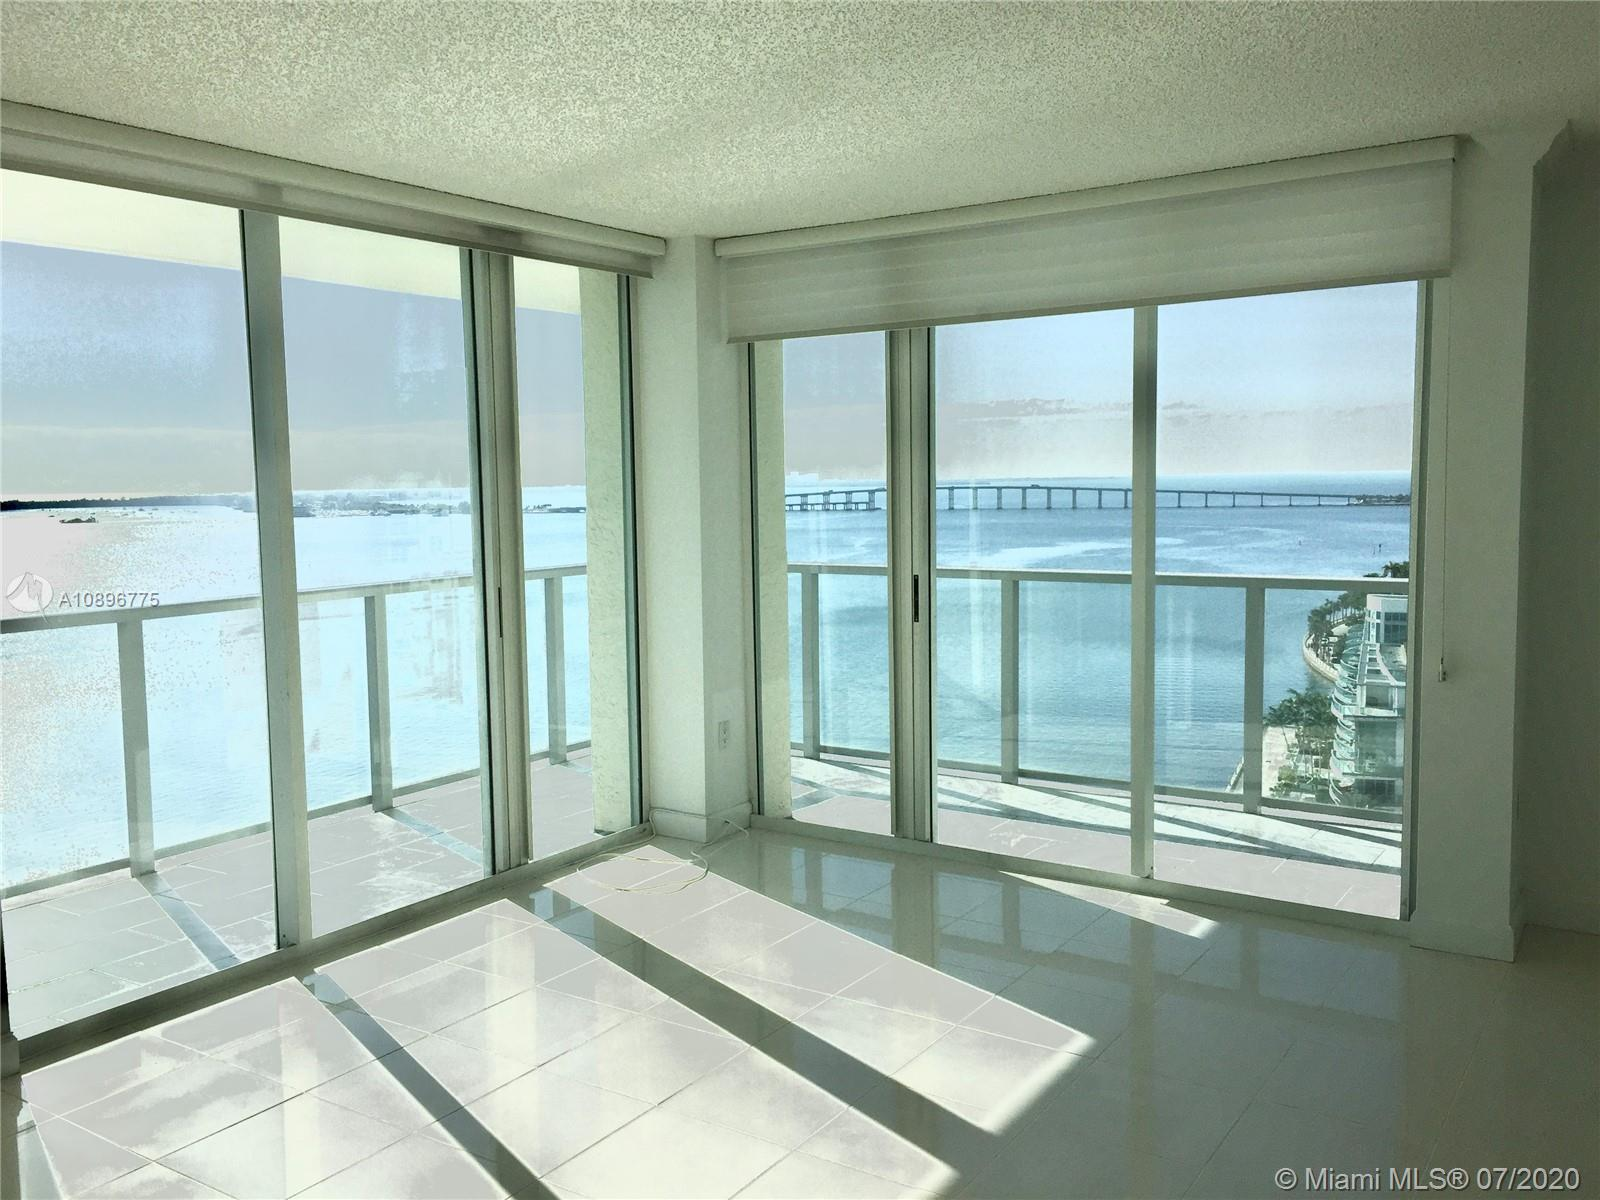 The Mark on Brickell is a 36-story condo building The building resides next to beautiful Biscayne Bay and is conveniently located in the heart of the Financial District of Miami. The residences feature spacious balconies that provide breathtaking views of Biscayne Bay and Key Biscayne. 